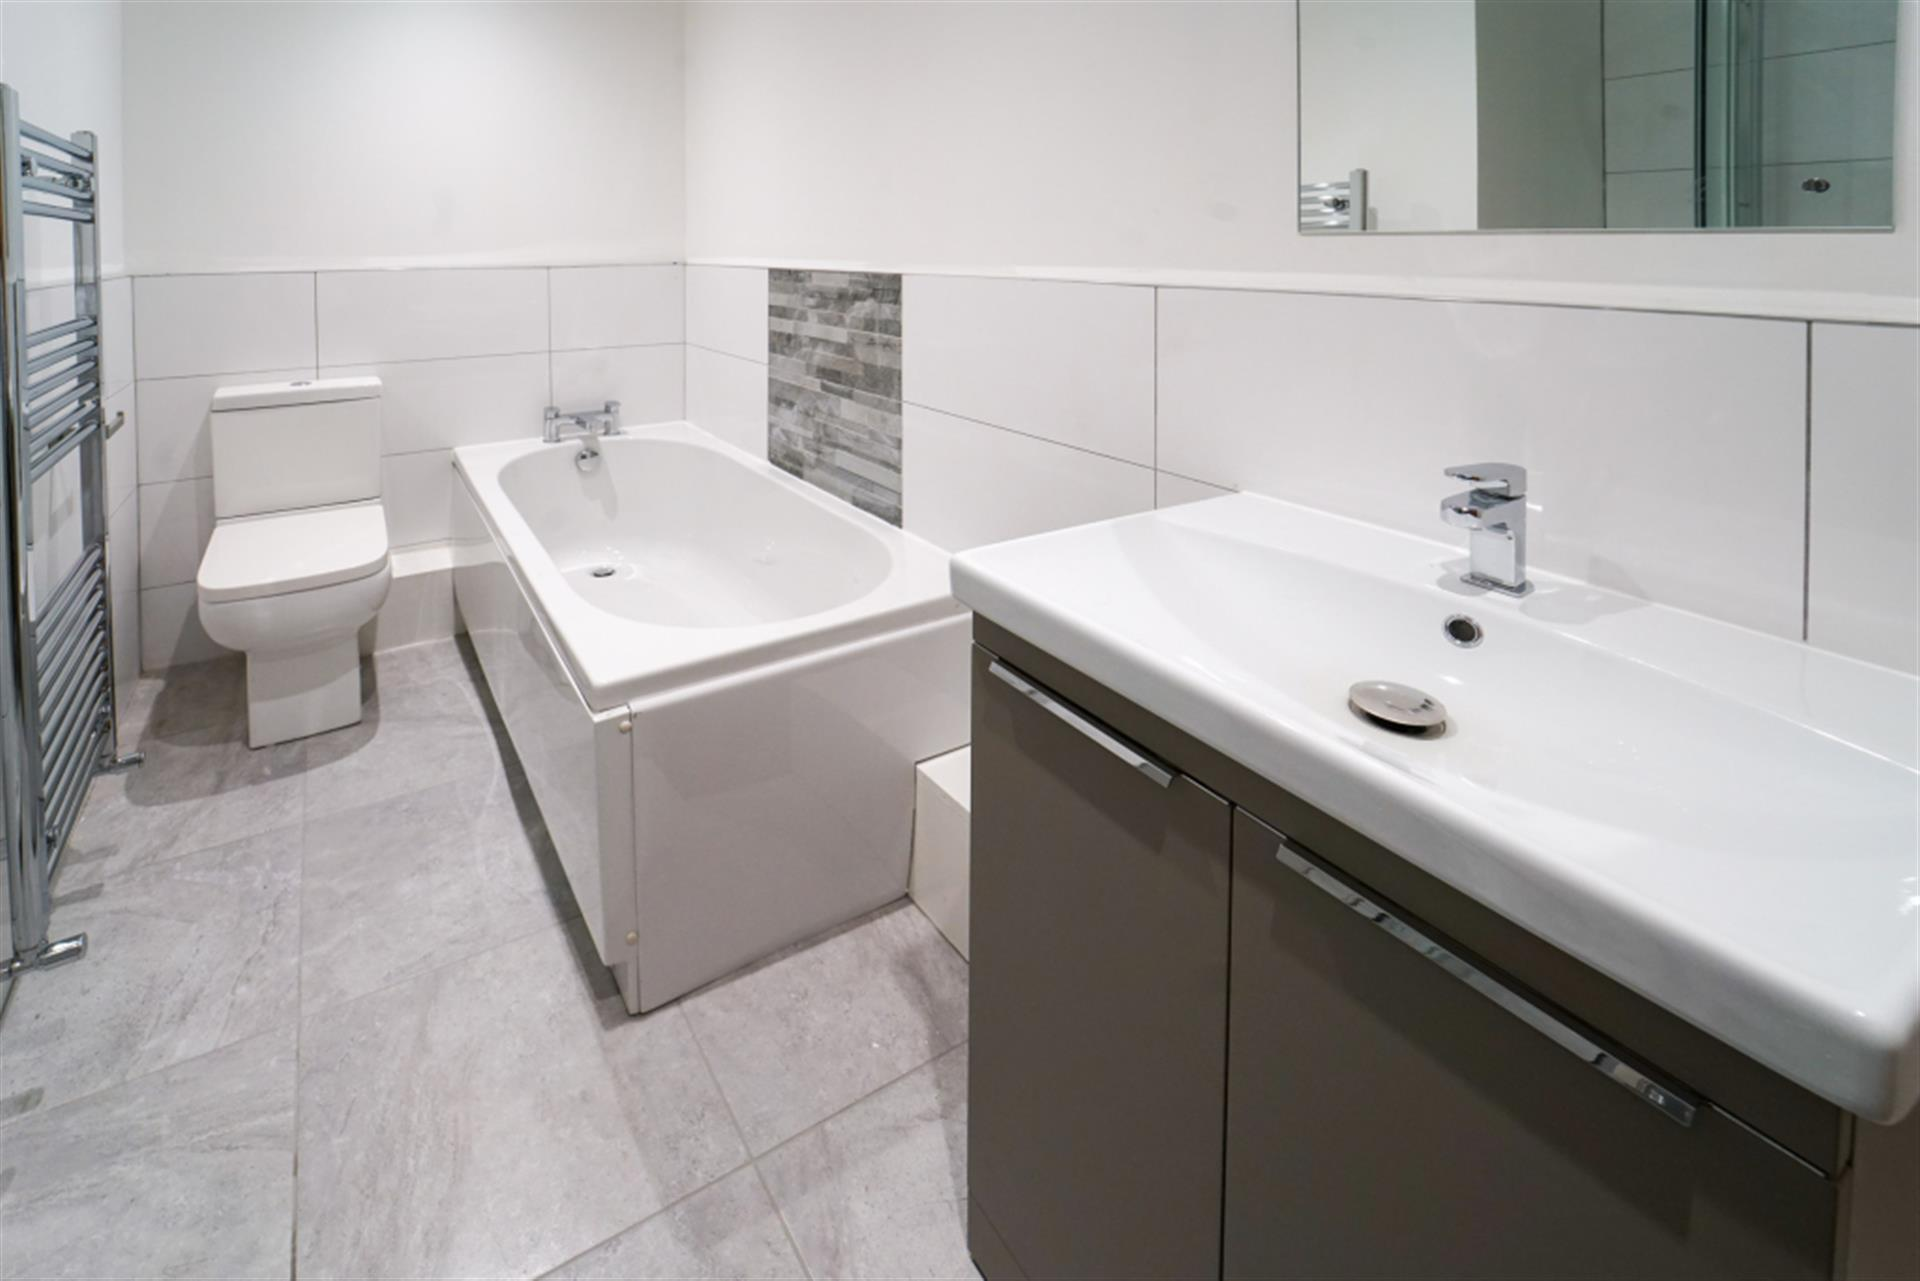 2 bedroom apartment flat / apartment To Let in 96 Watery Lane, Whitehall, Darwen, Lancs - 4 Piece Bathroom